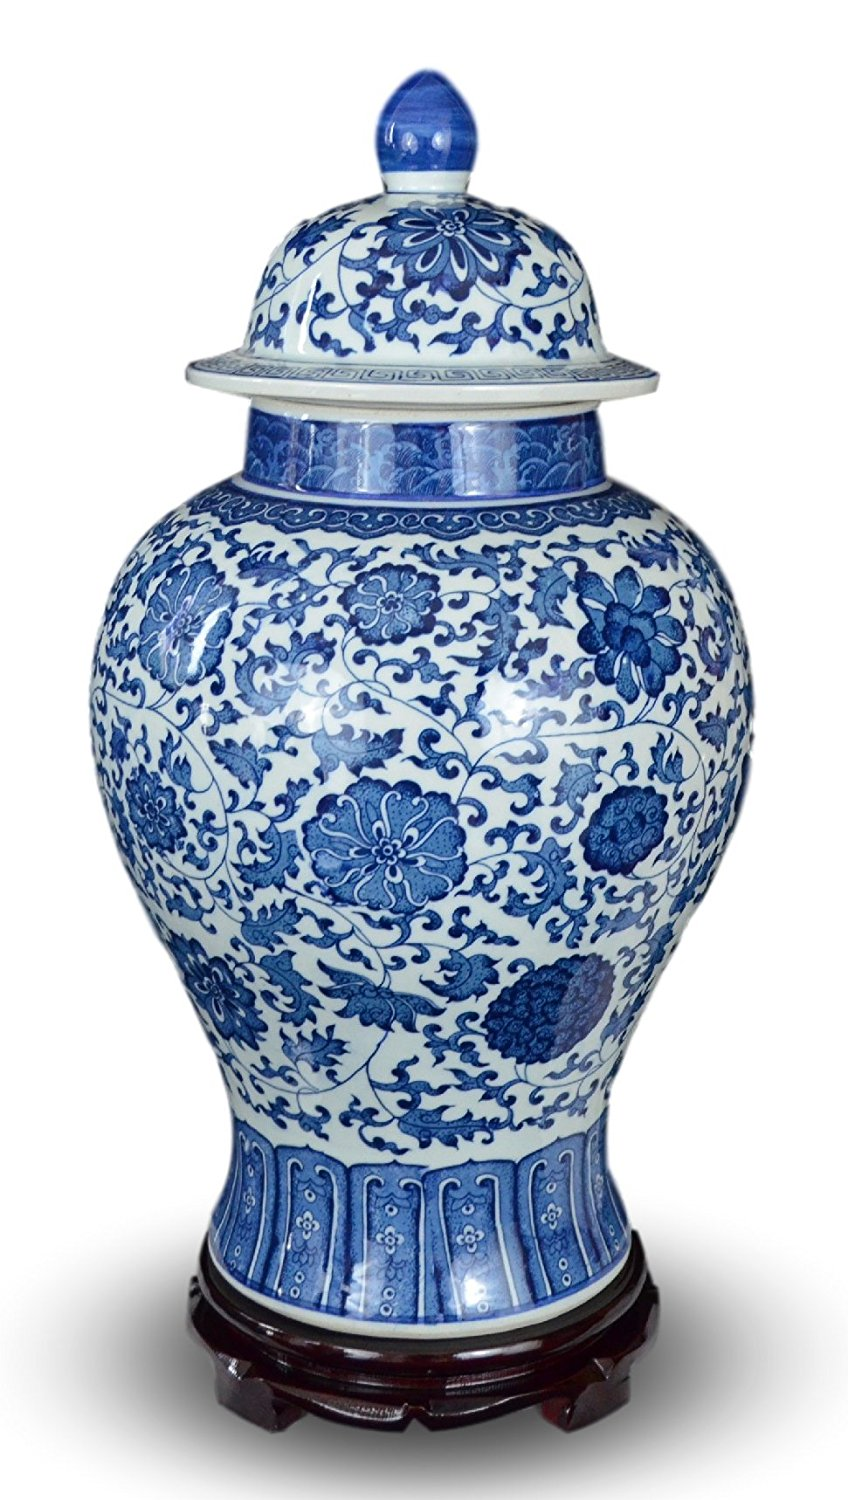 "20"" Classic Blue and White Porcelain Floral Temple Jar Vase, China Ming Style, Jingdezhen, Free Wood Base"